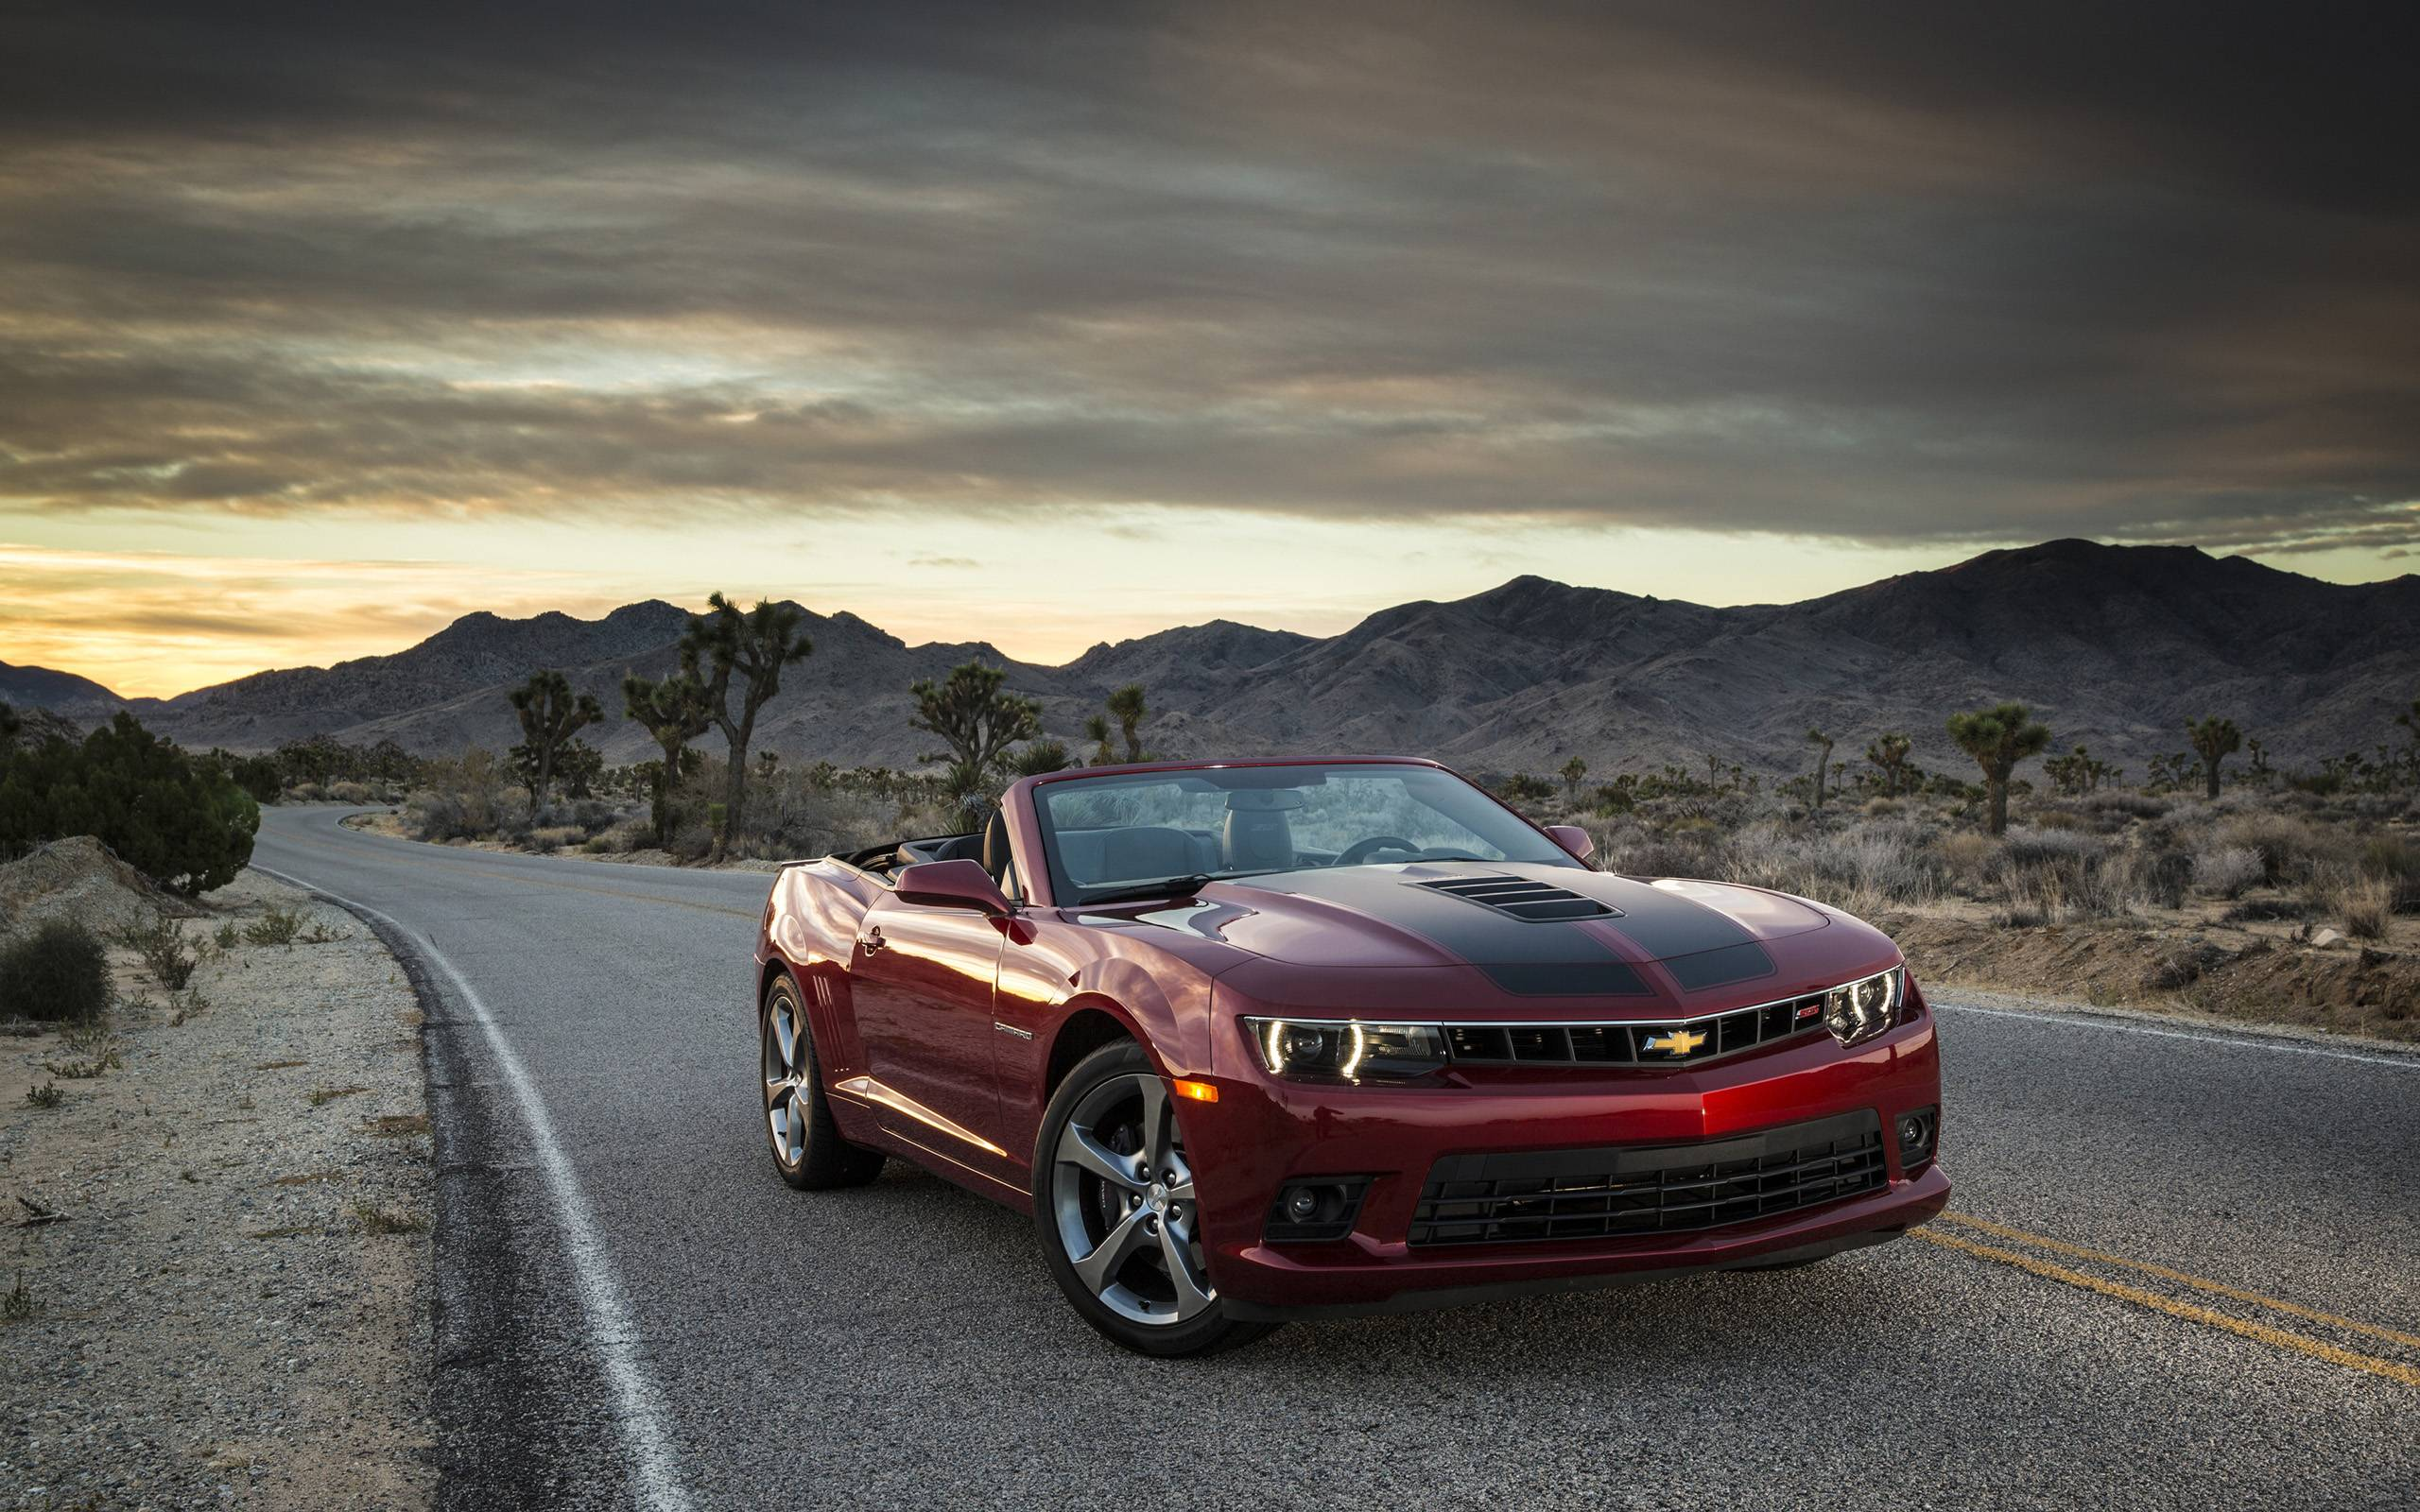 2015 Chevrolet Camaro SS Convertible Wallpaper